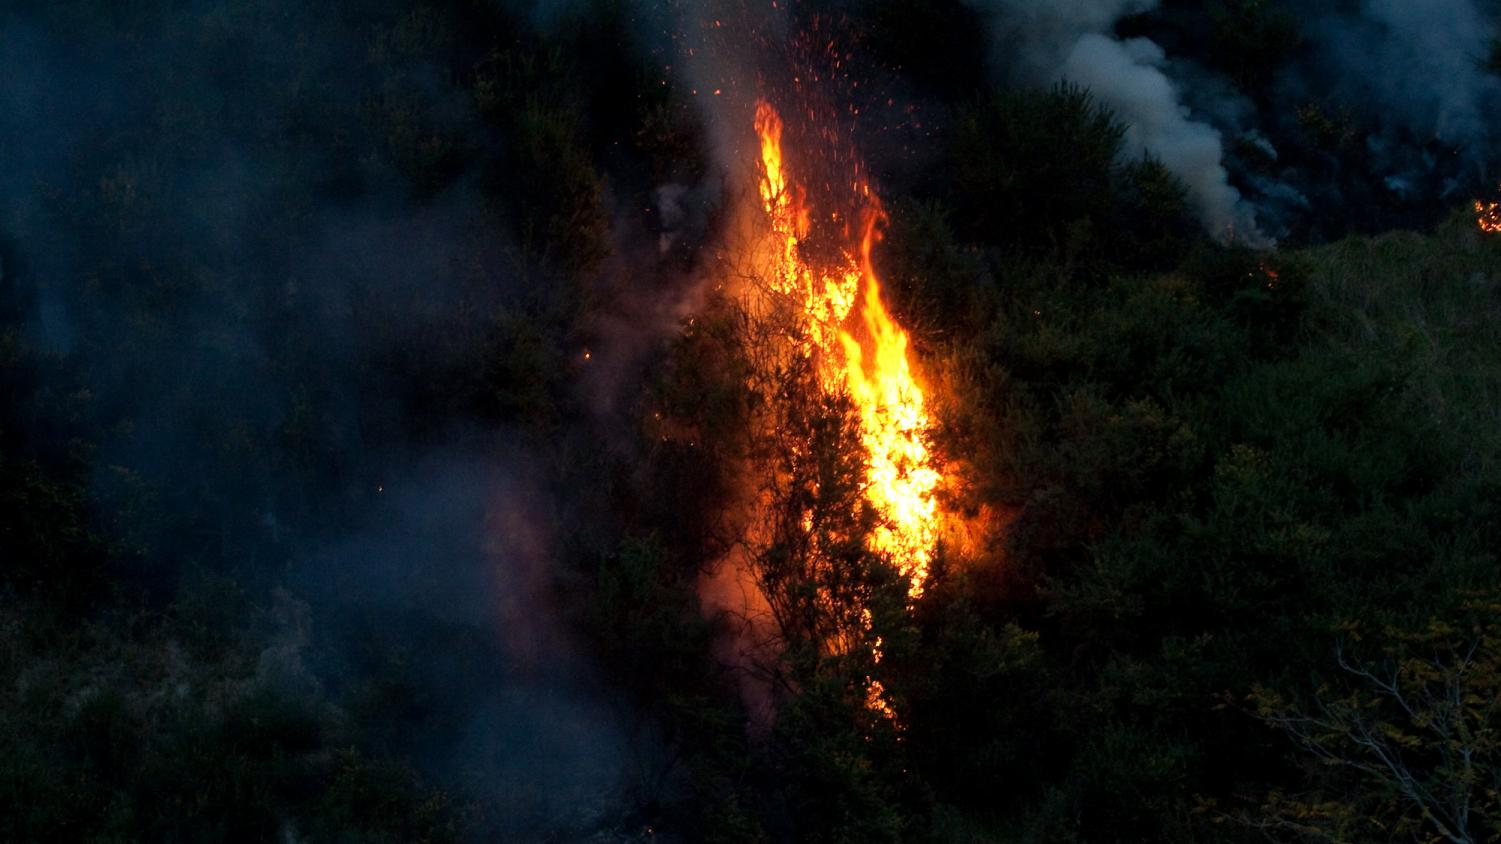 The Amazon Rainforest has been burning down since August, causing serious deforestation. Government officials have been hard at work, attempting to find an effective solution to bringing an end to these fires.